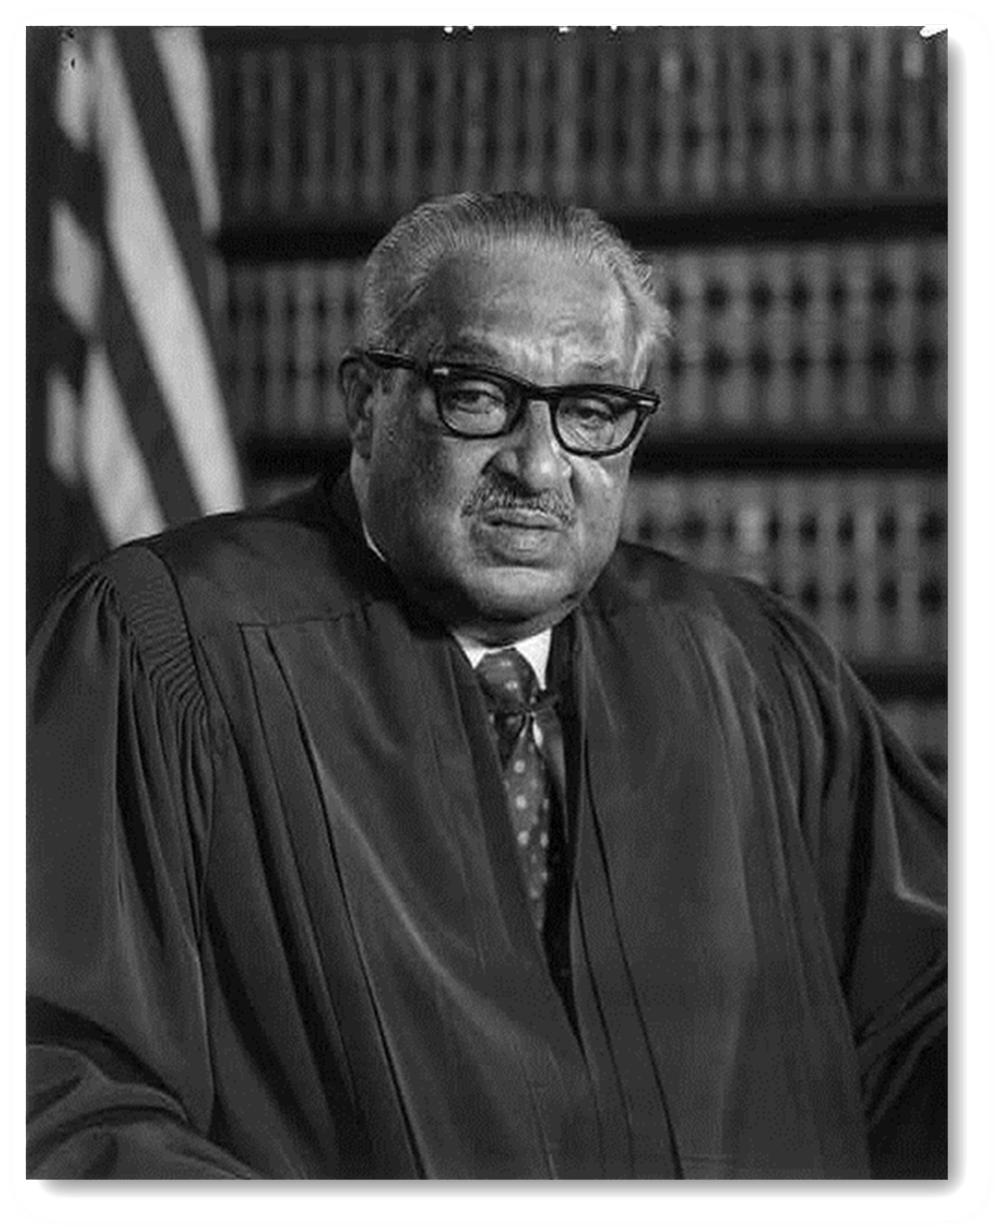 Photo of Justice Thurgood Marshall c. 1976 - click to view Library of Congress catalog record for photo.